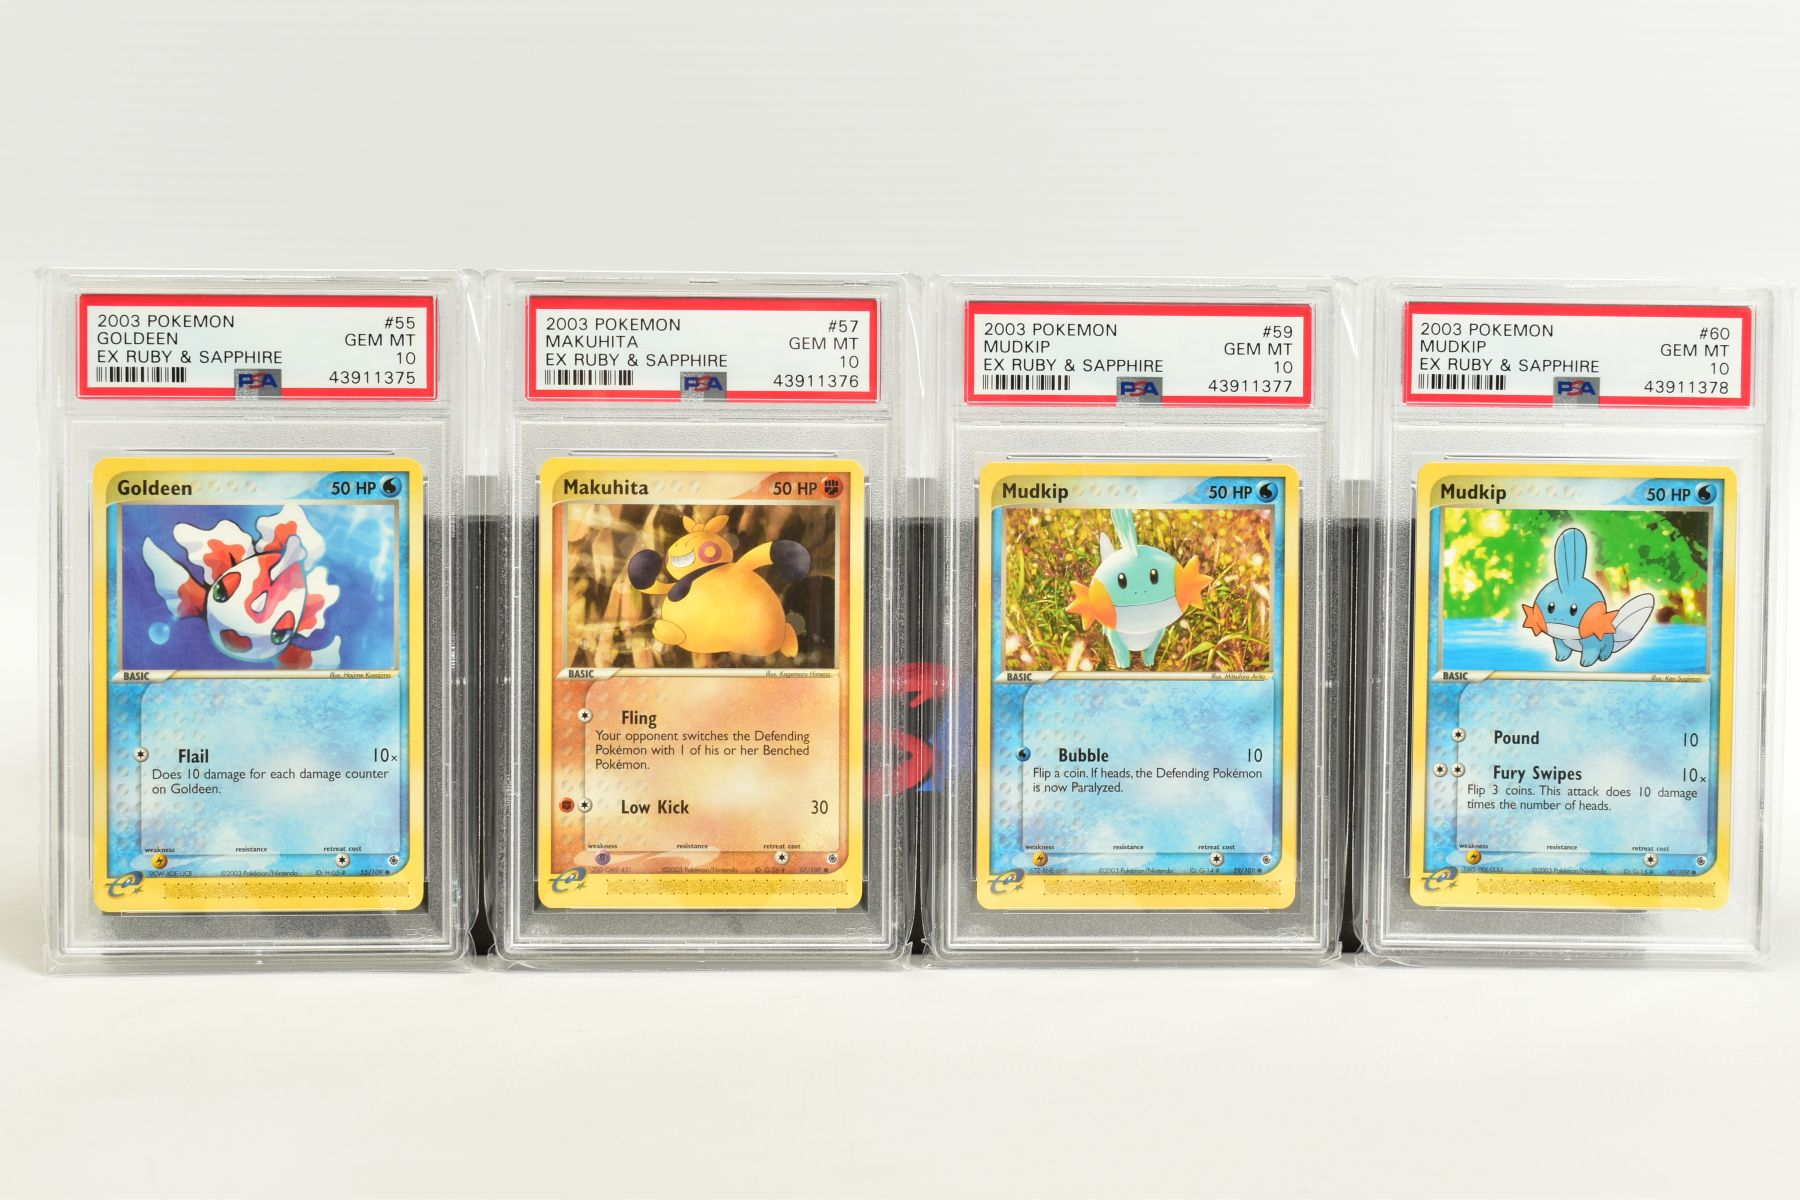 A QUANTITY OF PSA GRADED POKEMON EX TEAM ROCKET RETURNS AND EX RUBY & SAPPHIRE SET CARDS, all are - Image 13 of 15